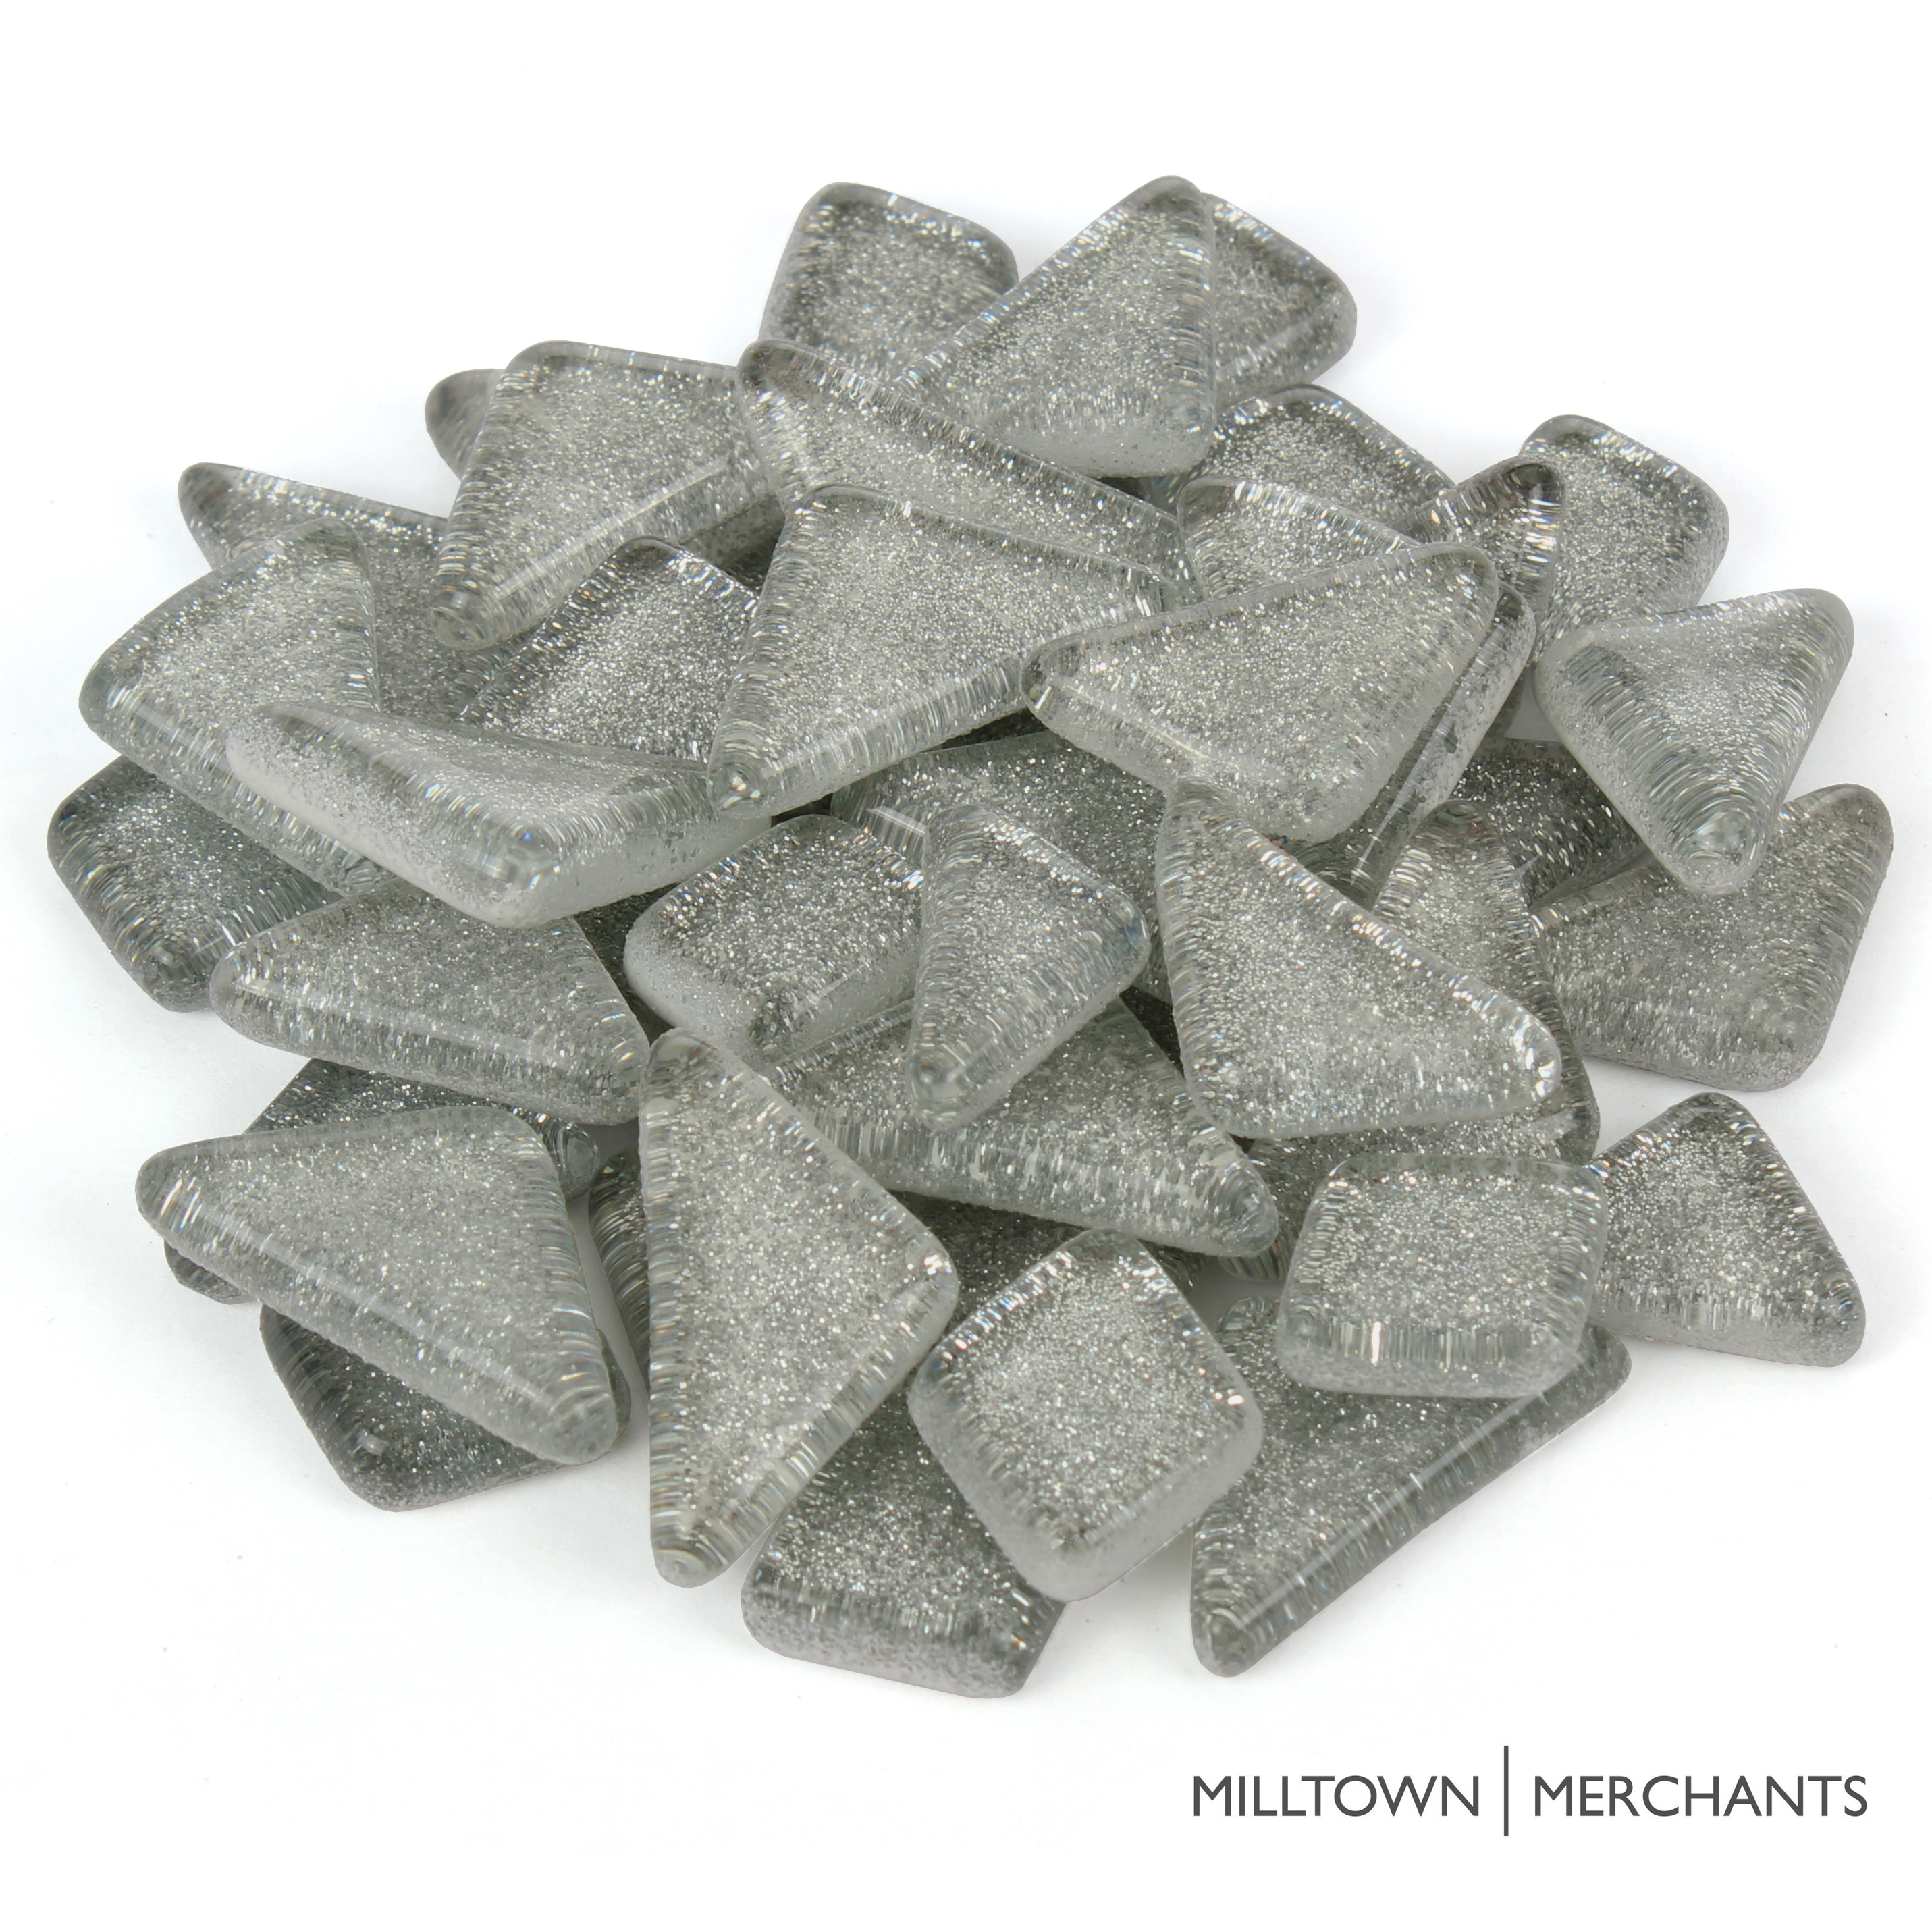 Milltown Merchants Glitter Mosaic Tile Pieces - Bulk Sparkle Mosaic Tiles - Shimmer Tile Assortment For Backsplash, Murals, Stepping Stones, and Mosaics